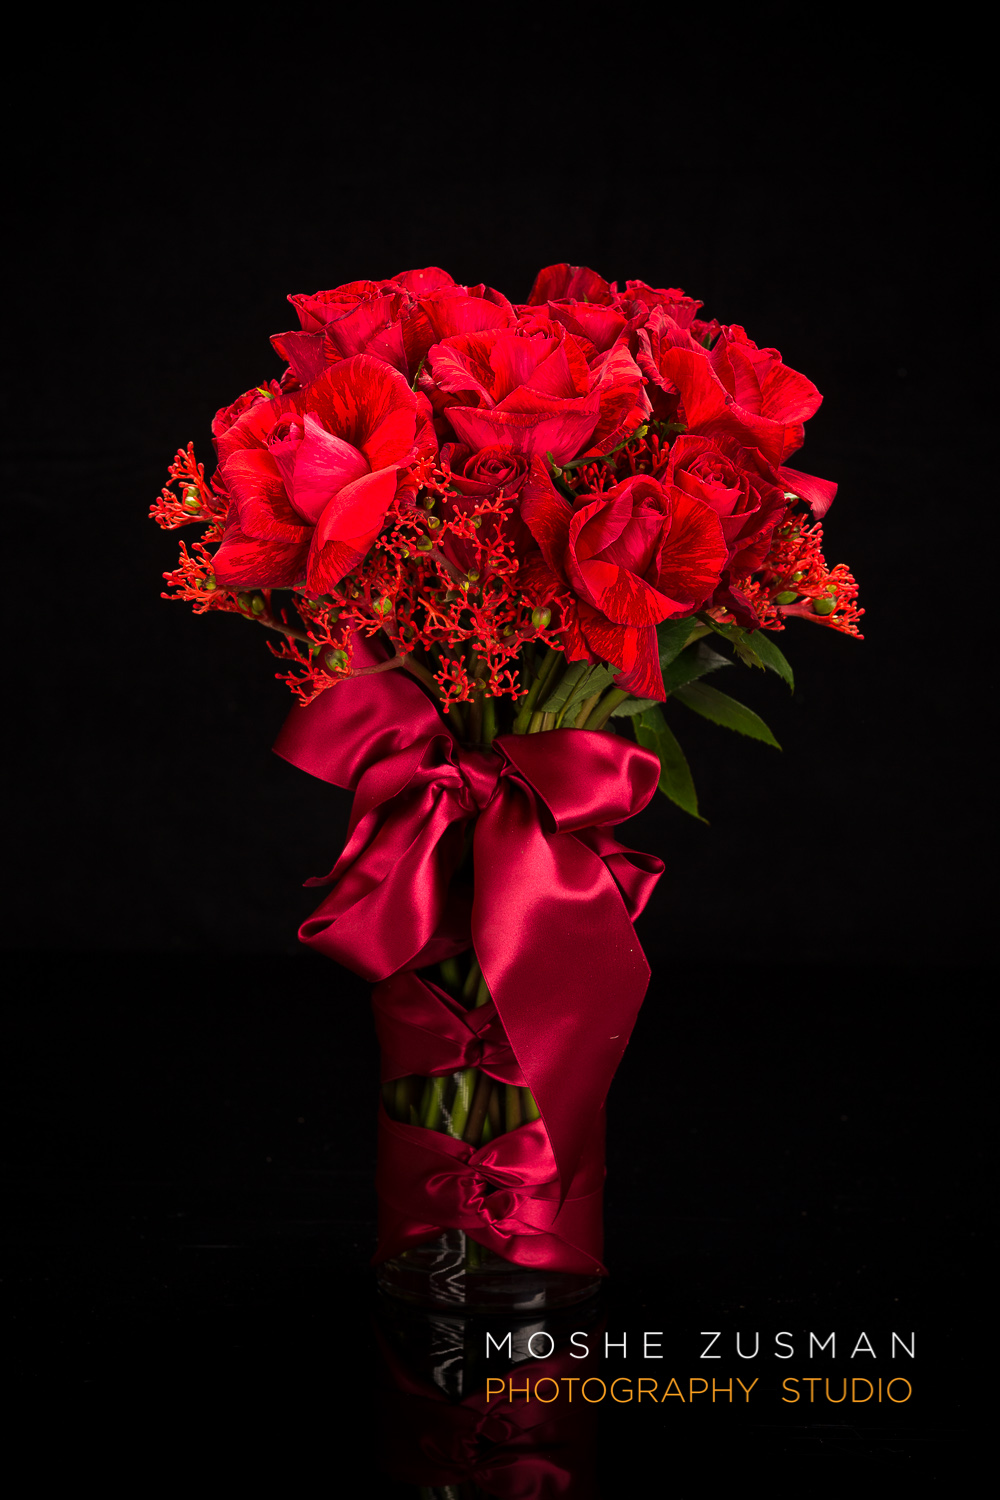 May_Flowers_Reston_Moshe_Zusman_Photography_Valentines_Flowers-08.jpg